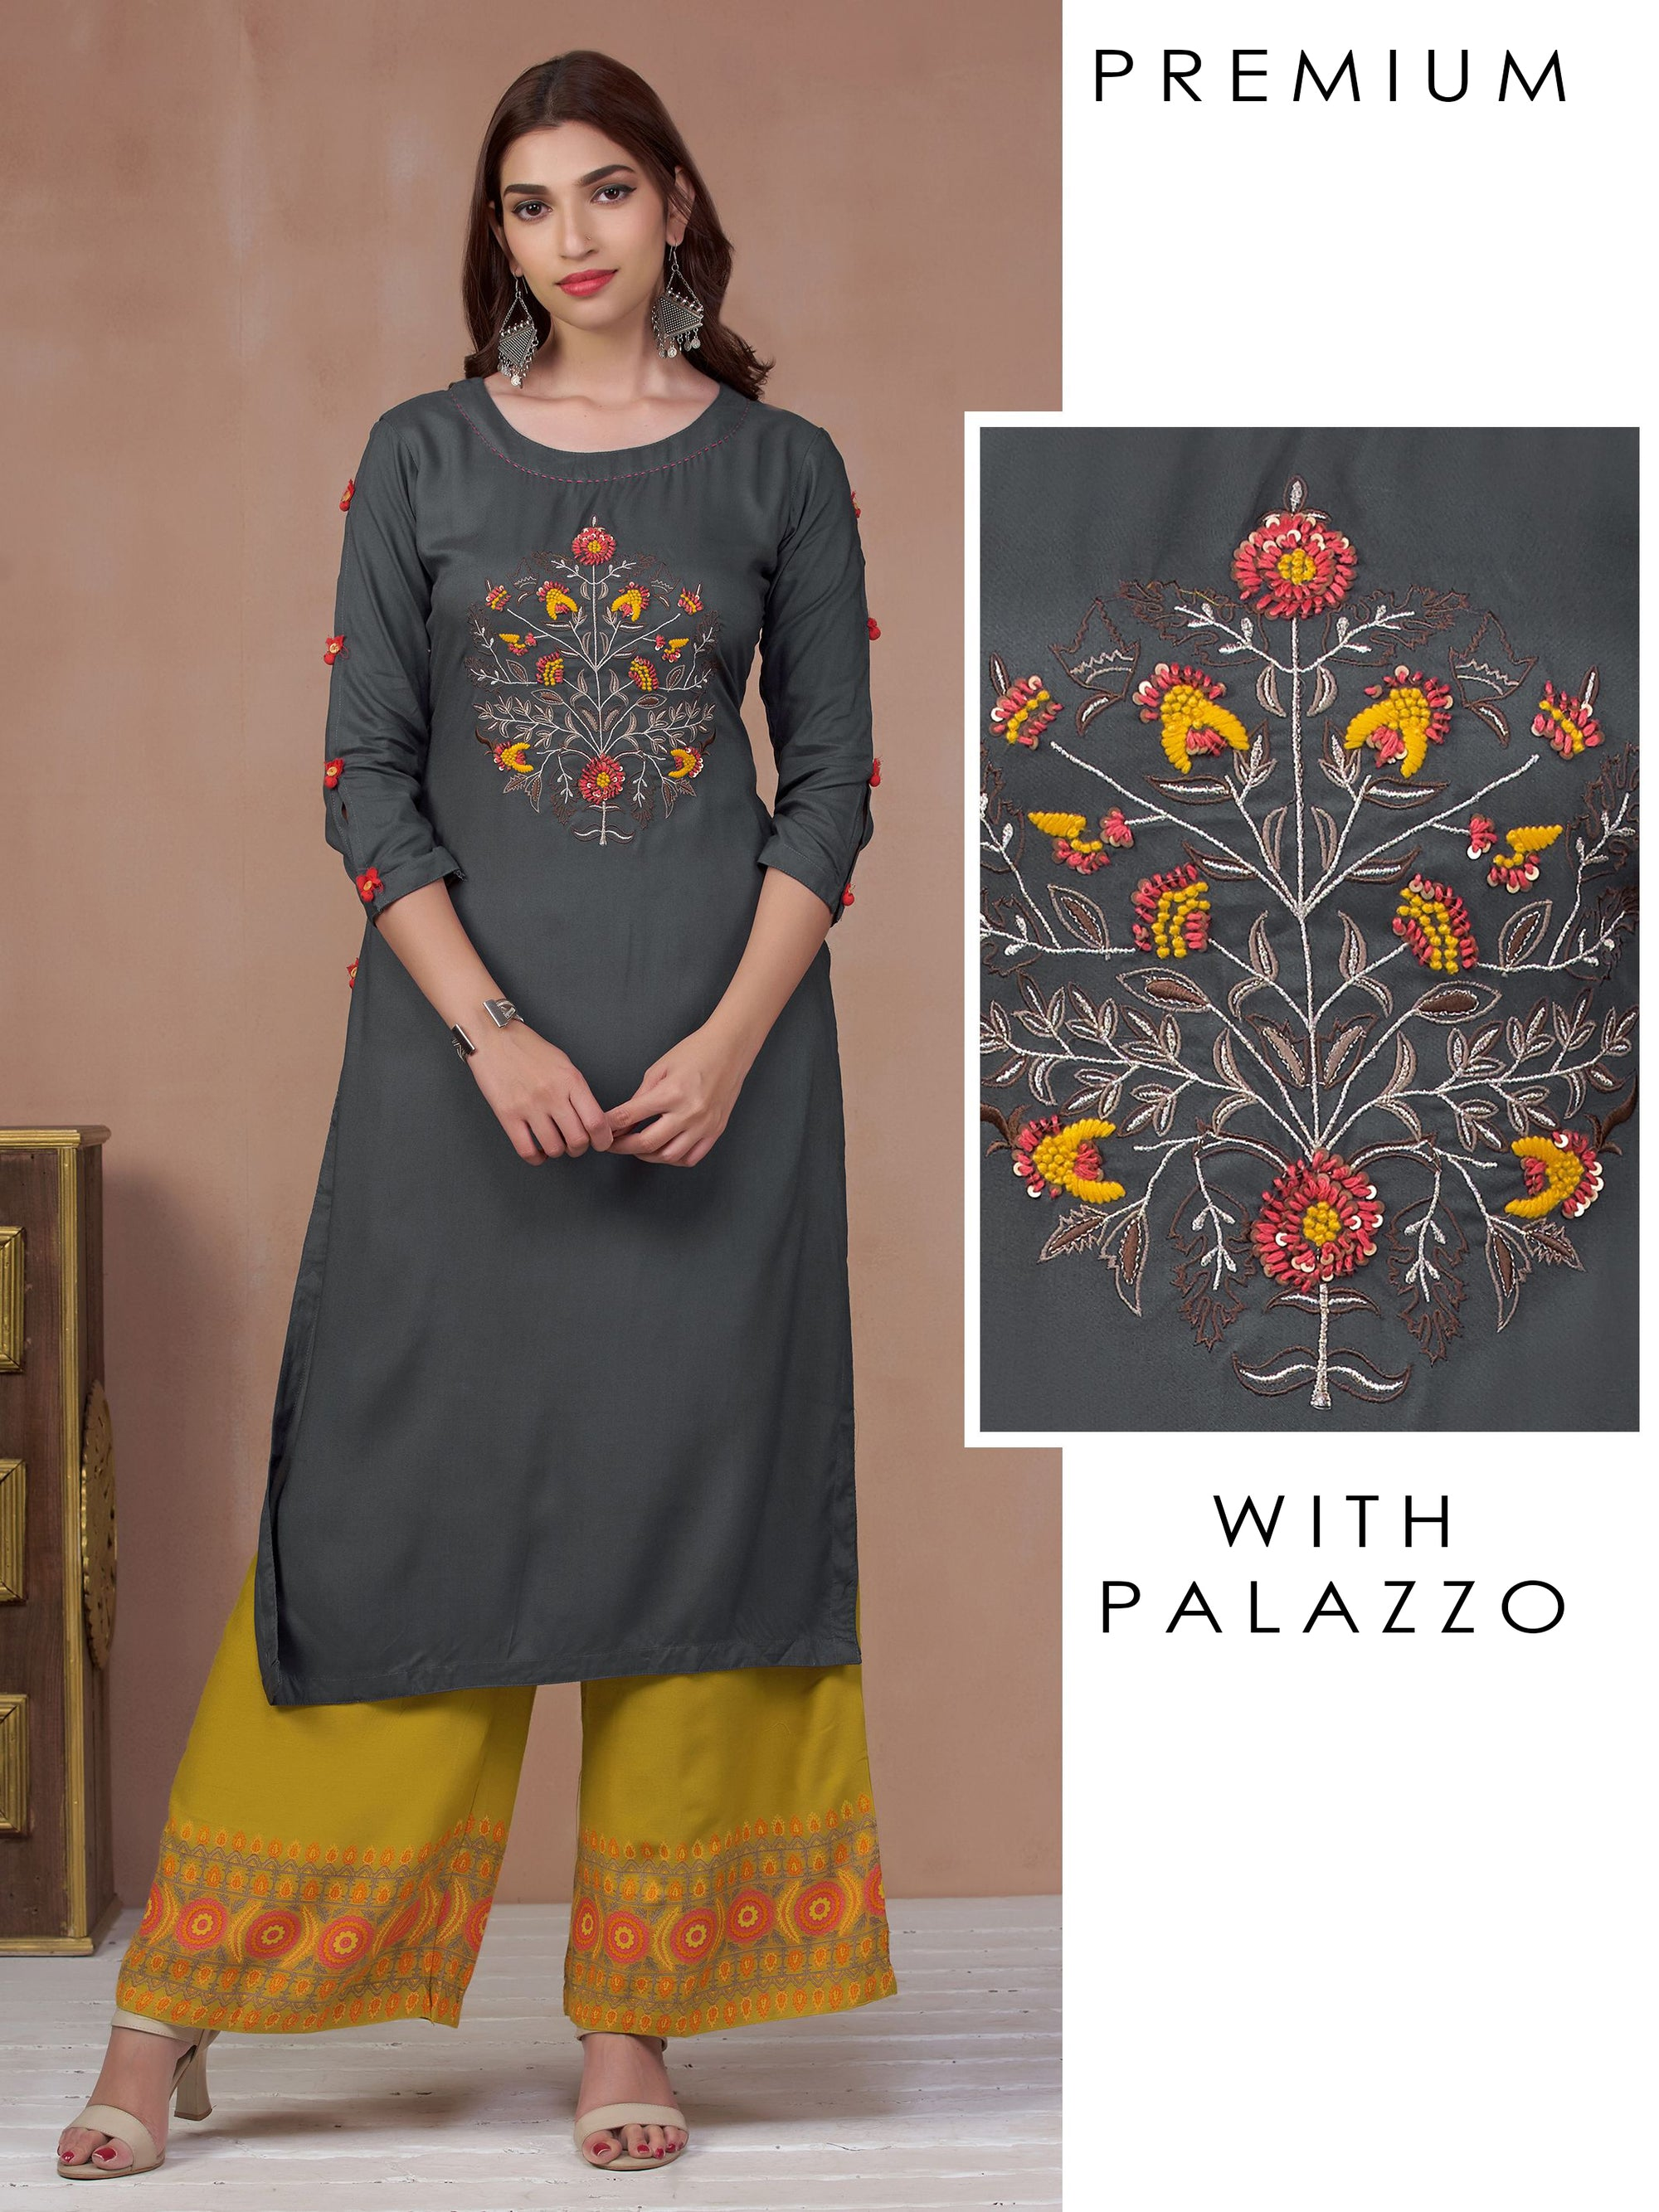 Palmette Motif Embroidered Kurti & Wreath Printed Palazzo Set